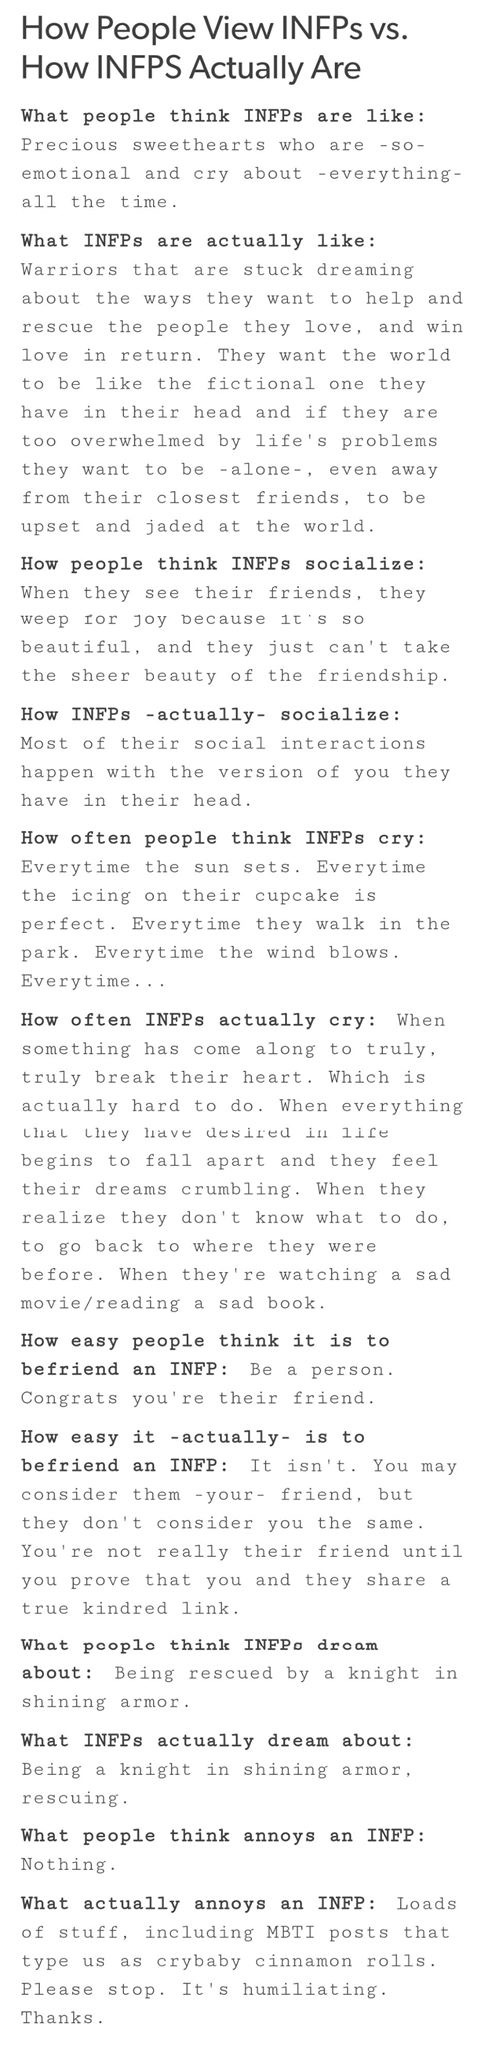 Pin by Cara M on mbti - infp | Pinterest | INFP, Personality and